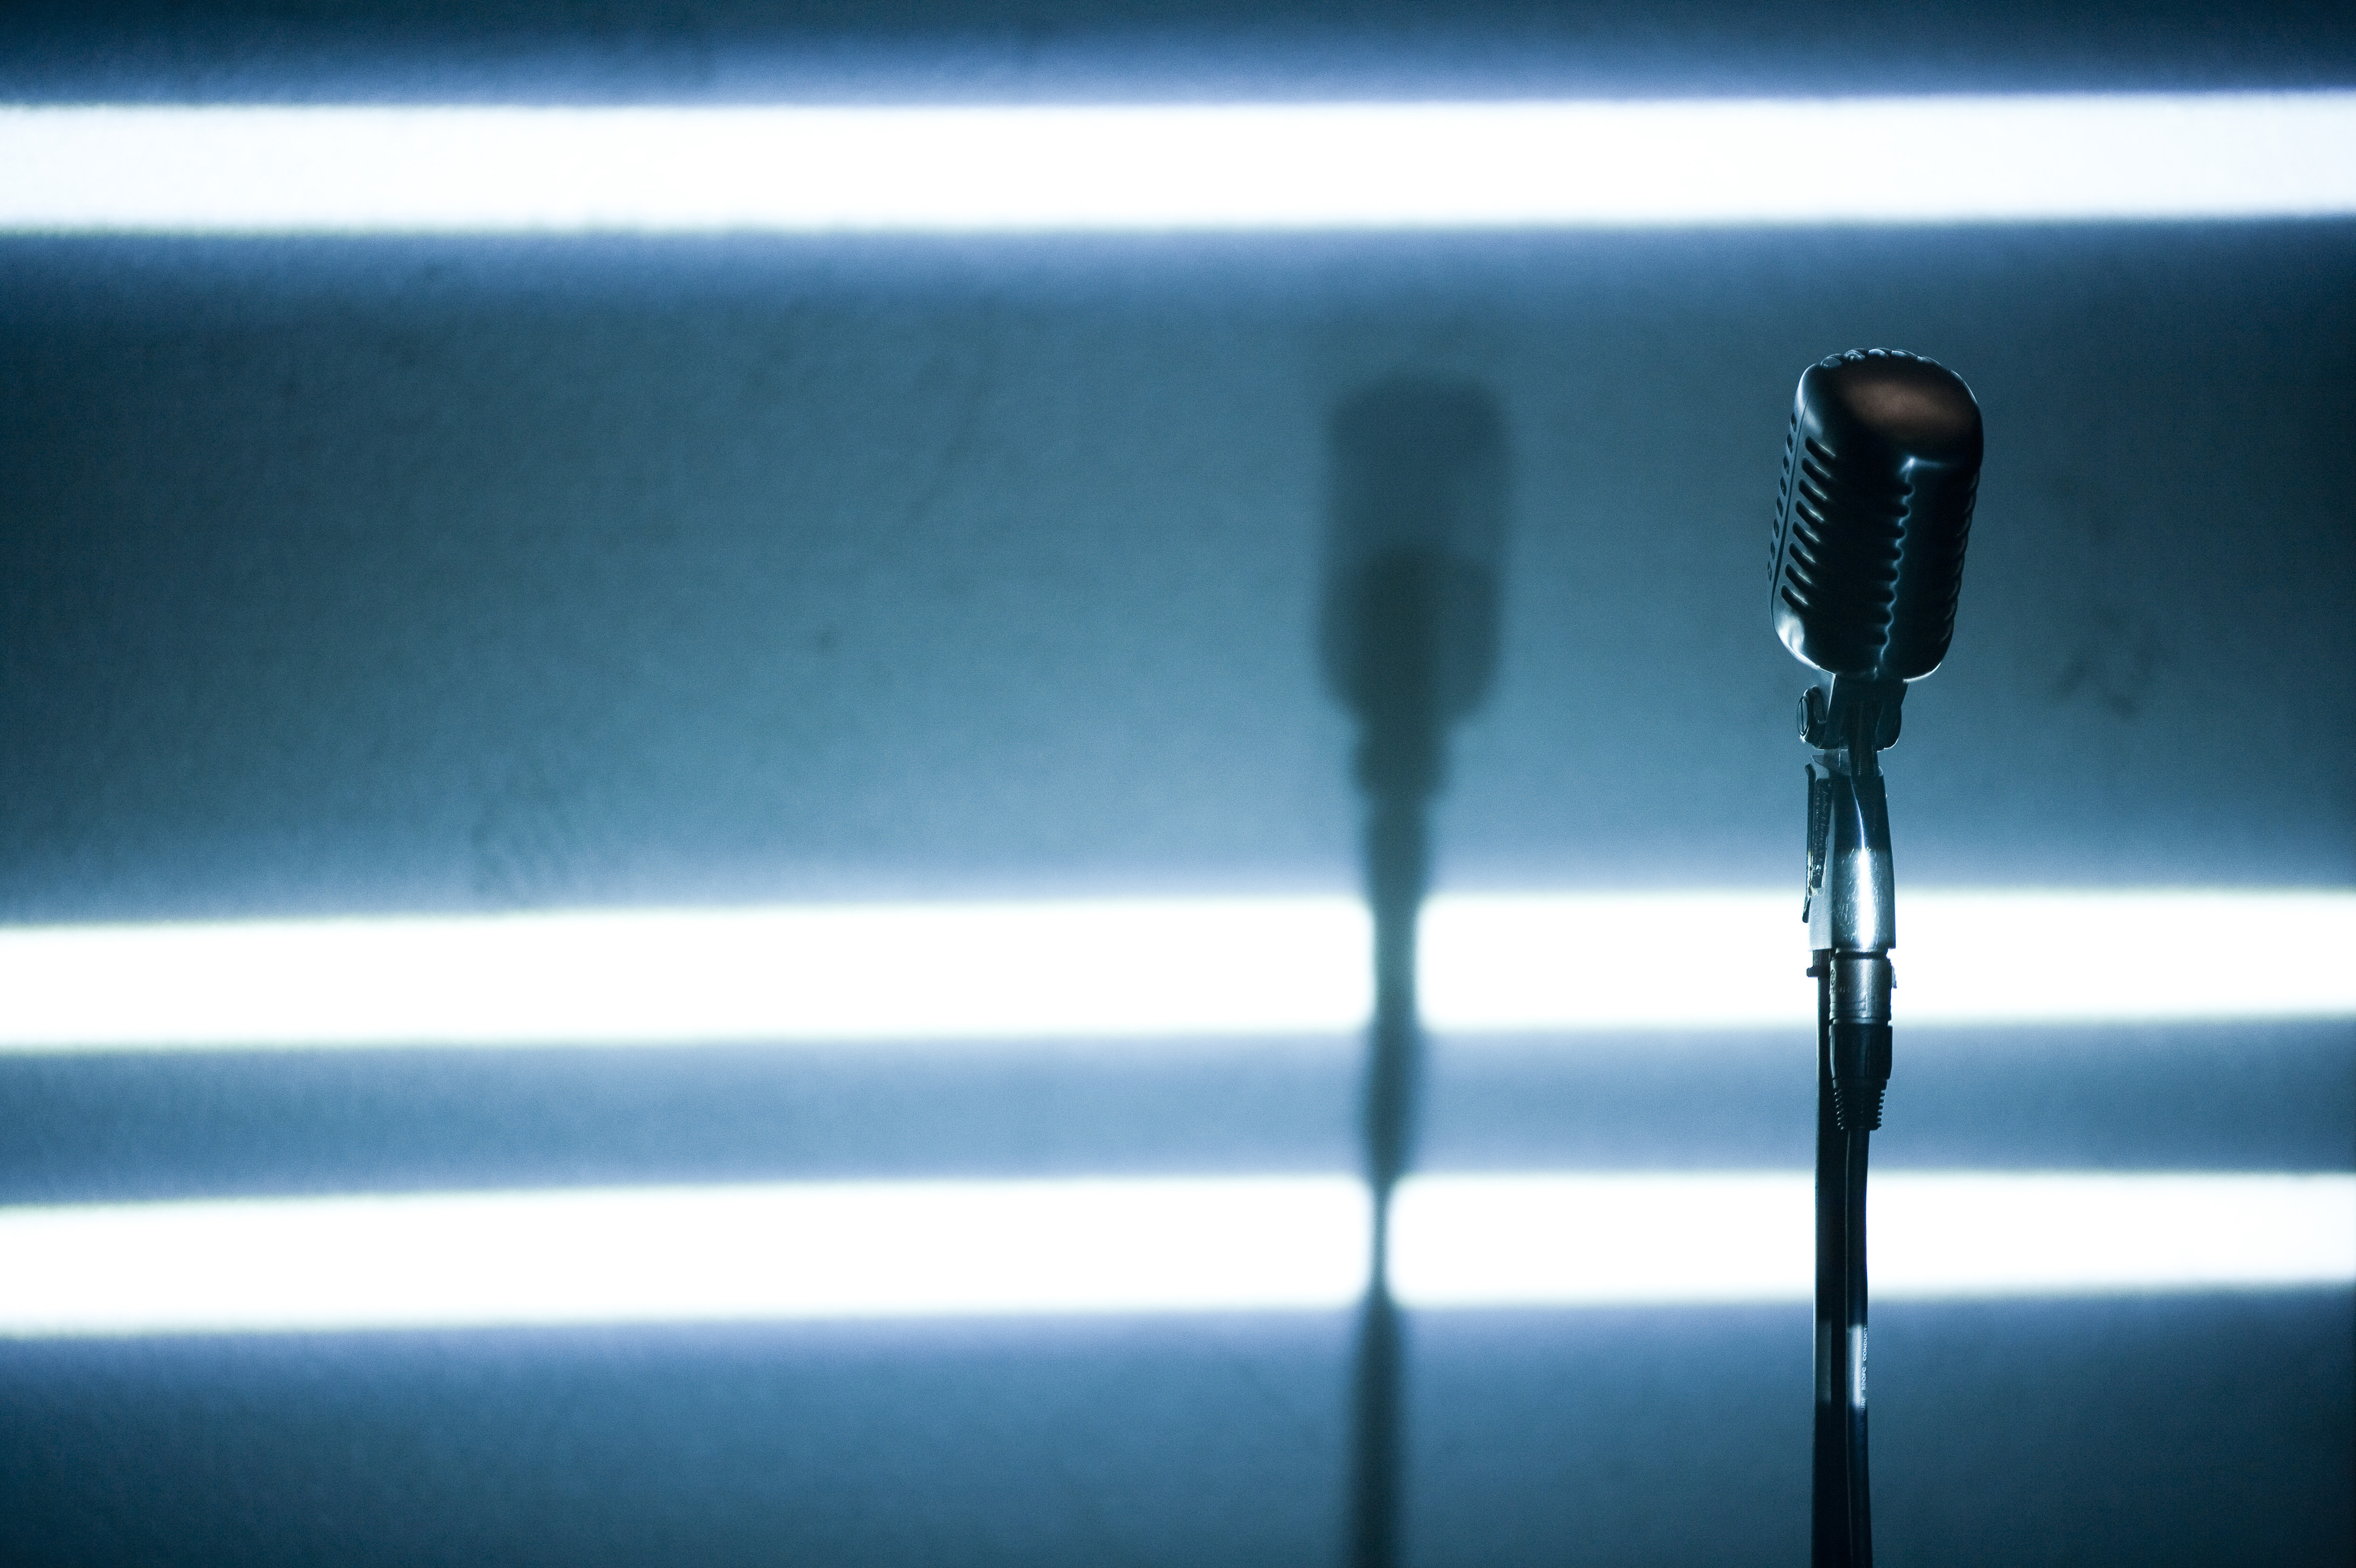 A microphone backlit on a stage